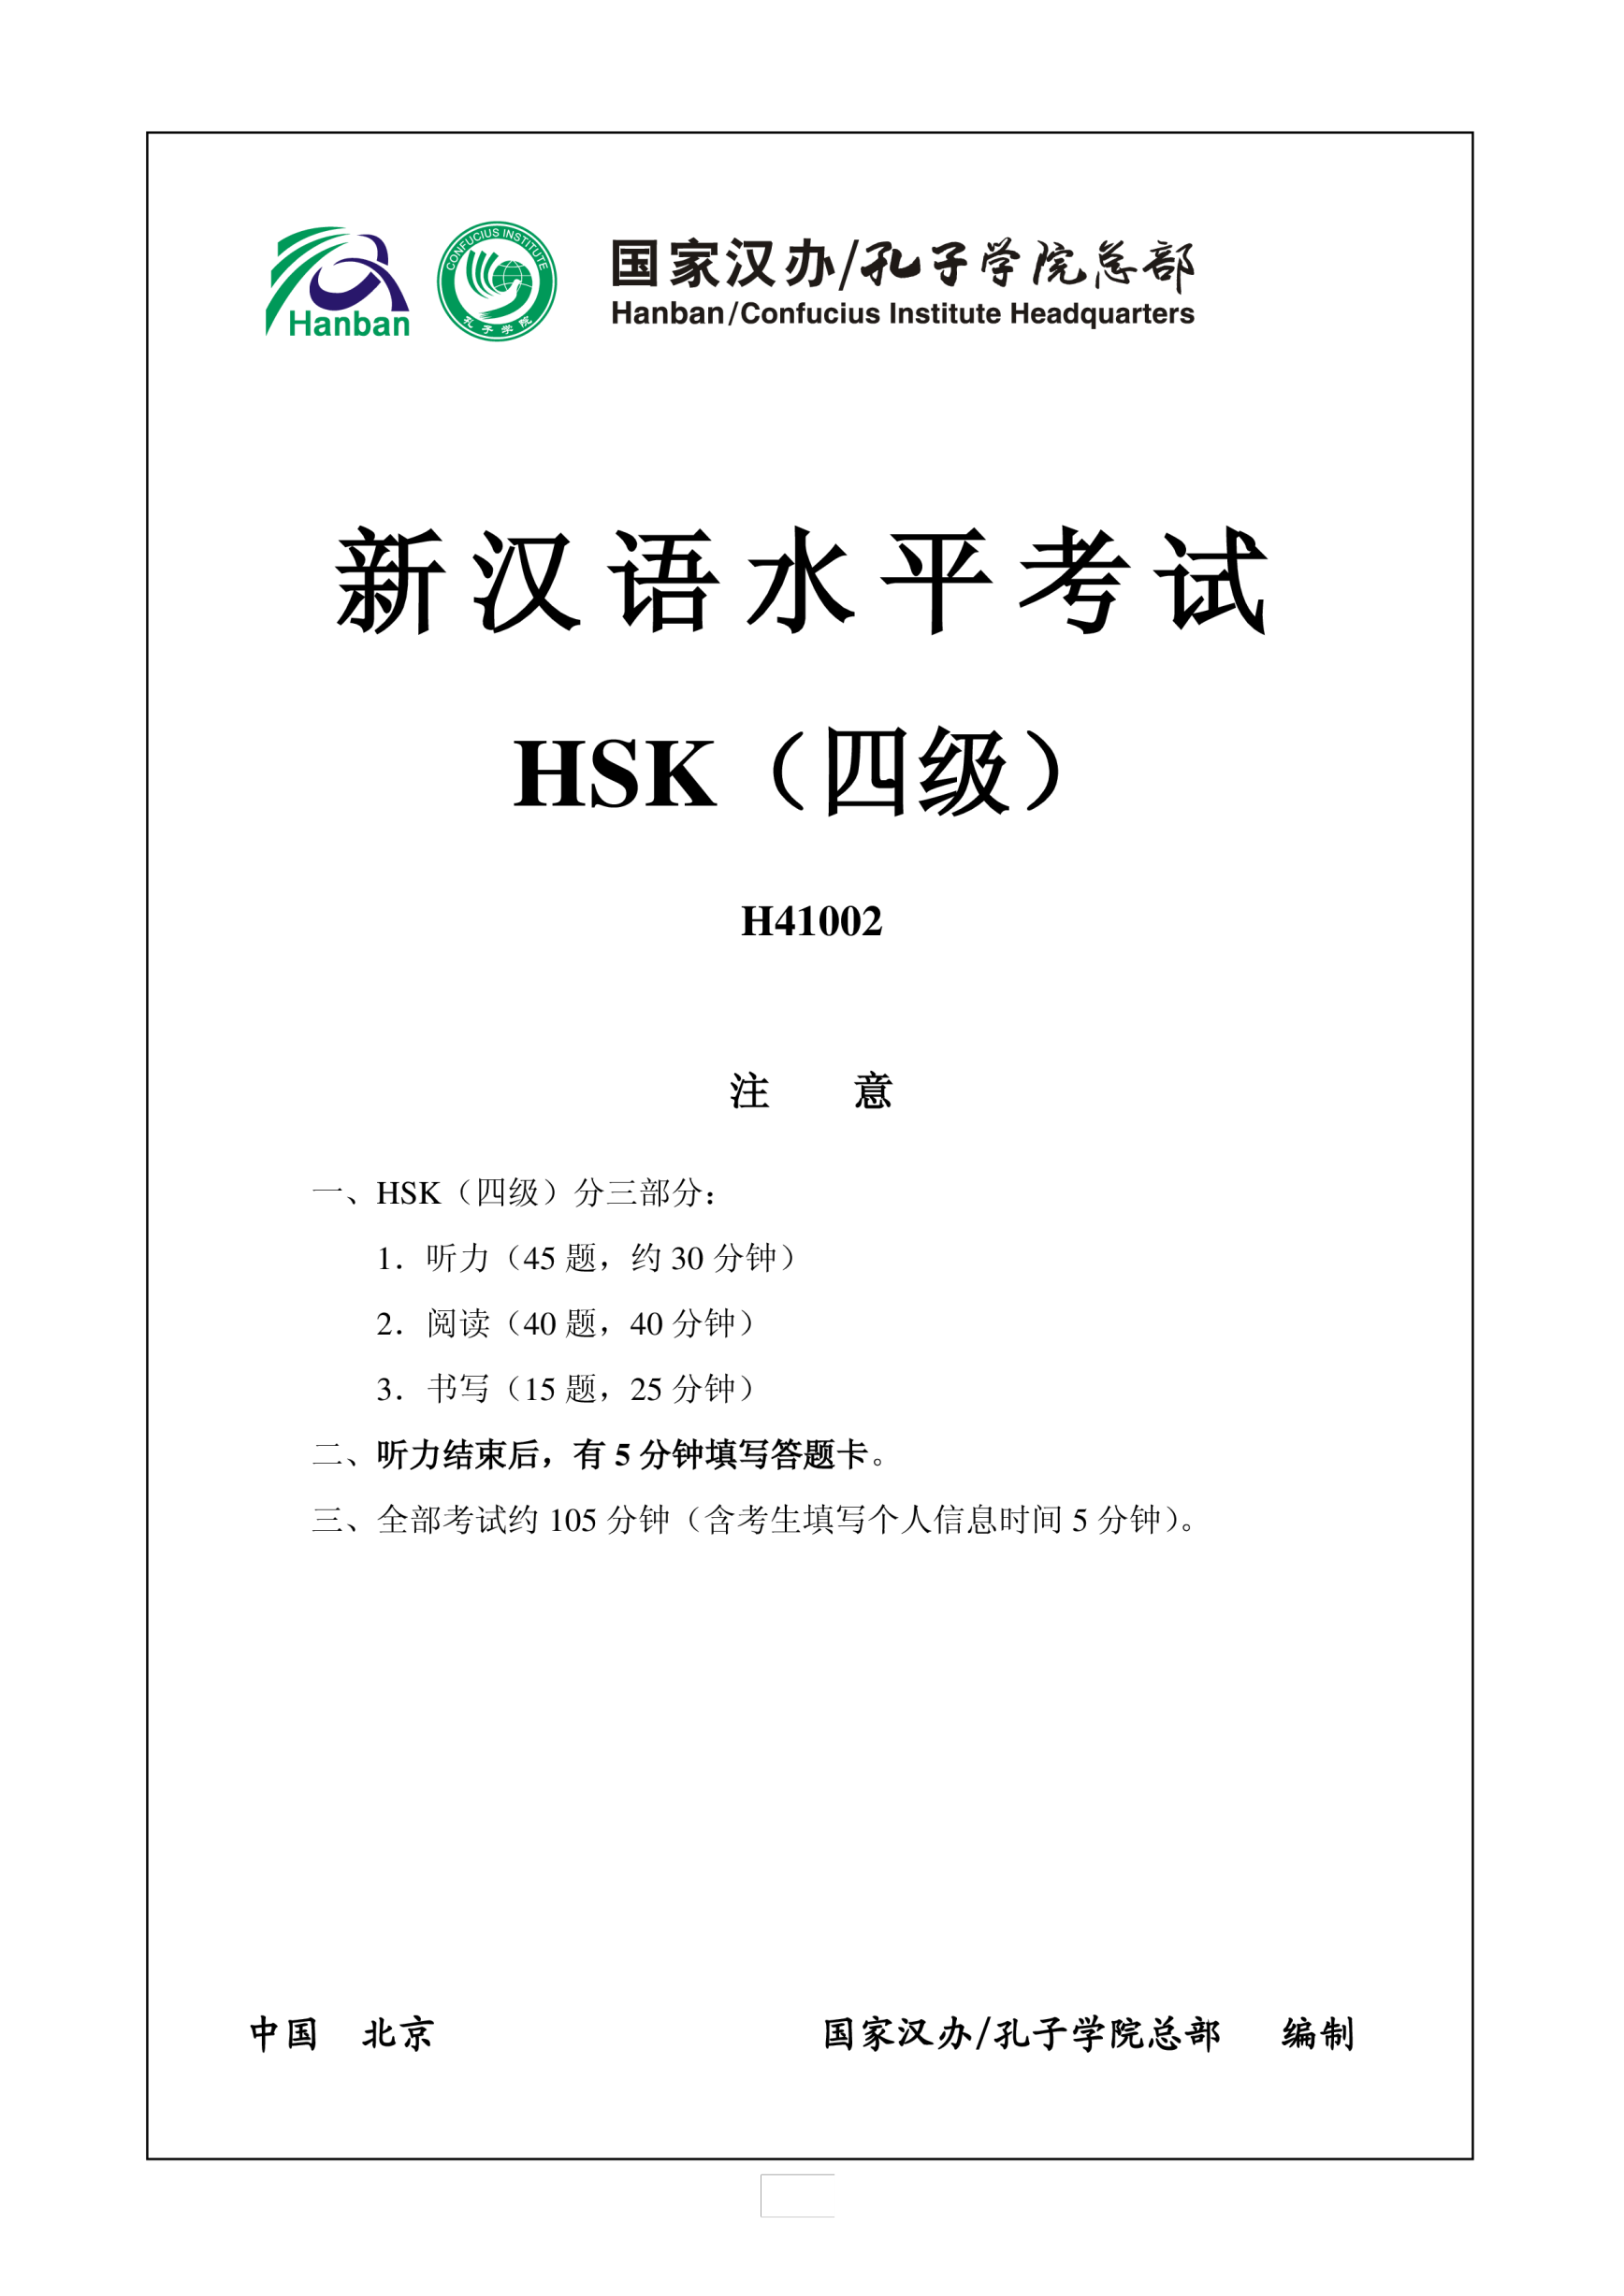 template preview imageHSK4 Chinese Exam including Answers # HSK H41002